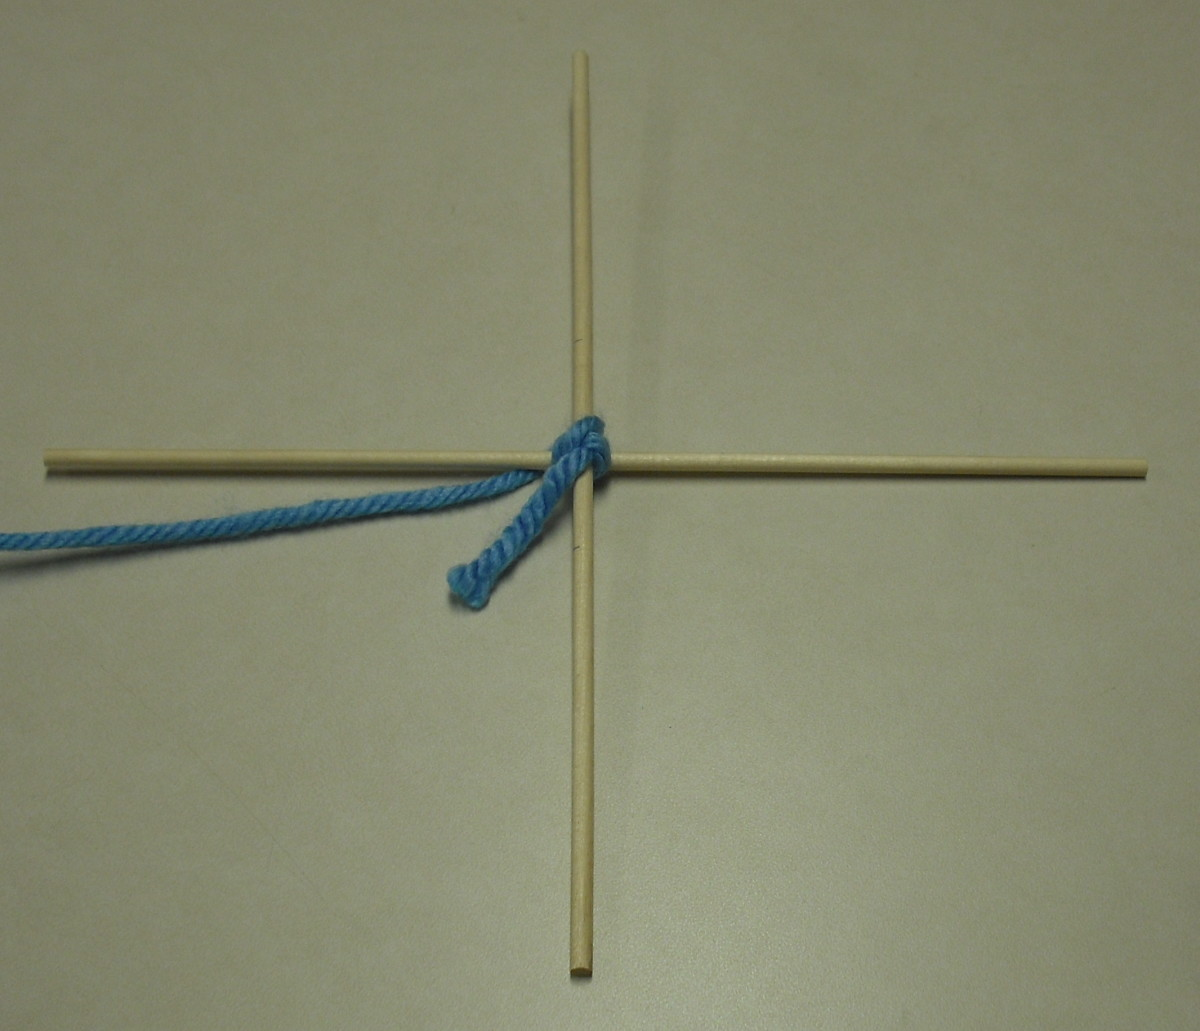 Secure Dowels by Tightly Wrapping Around Intersection in a Crossed Pattern